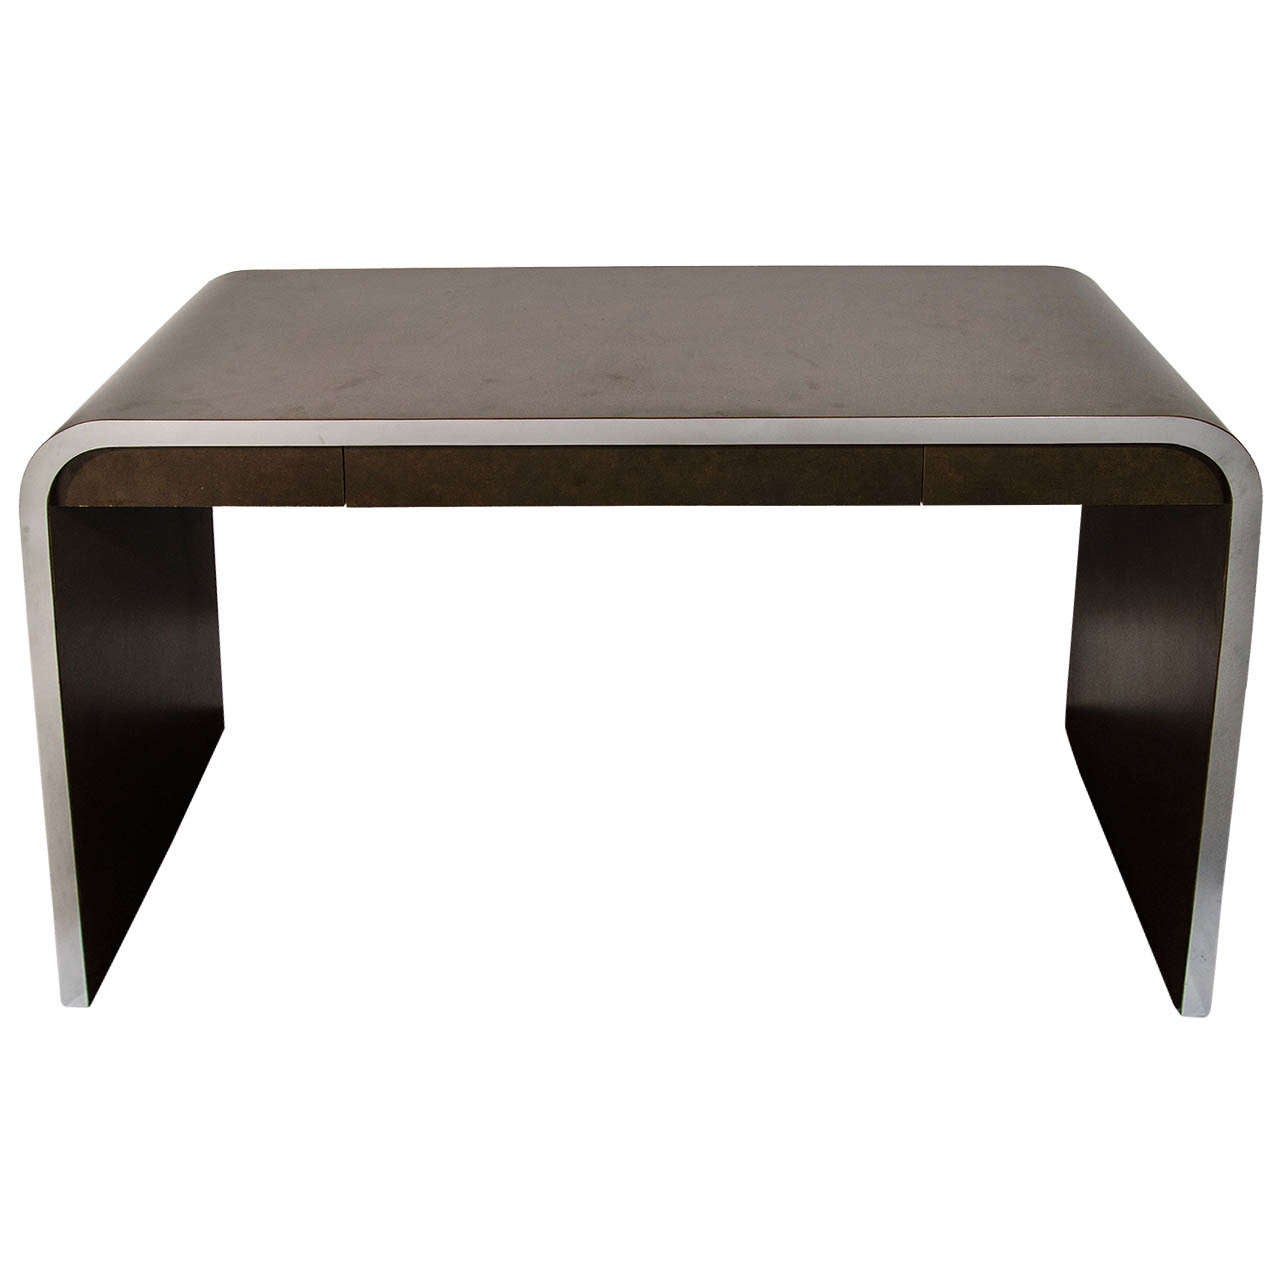 Mid-Century Modern Streamline Waterfall Desk and Console Table For Sale